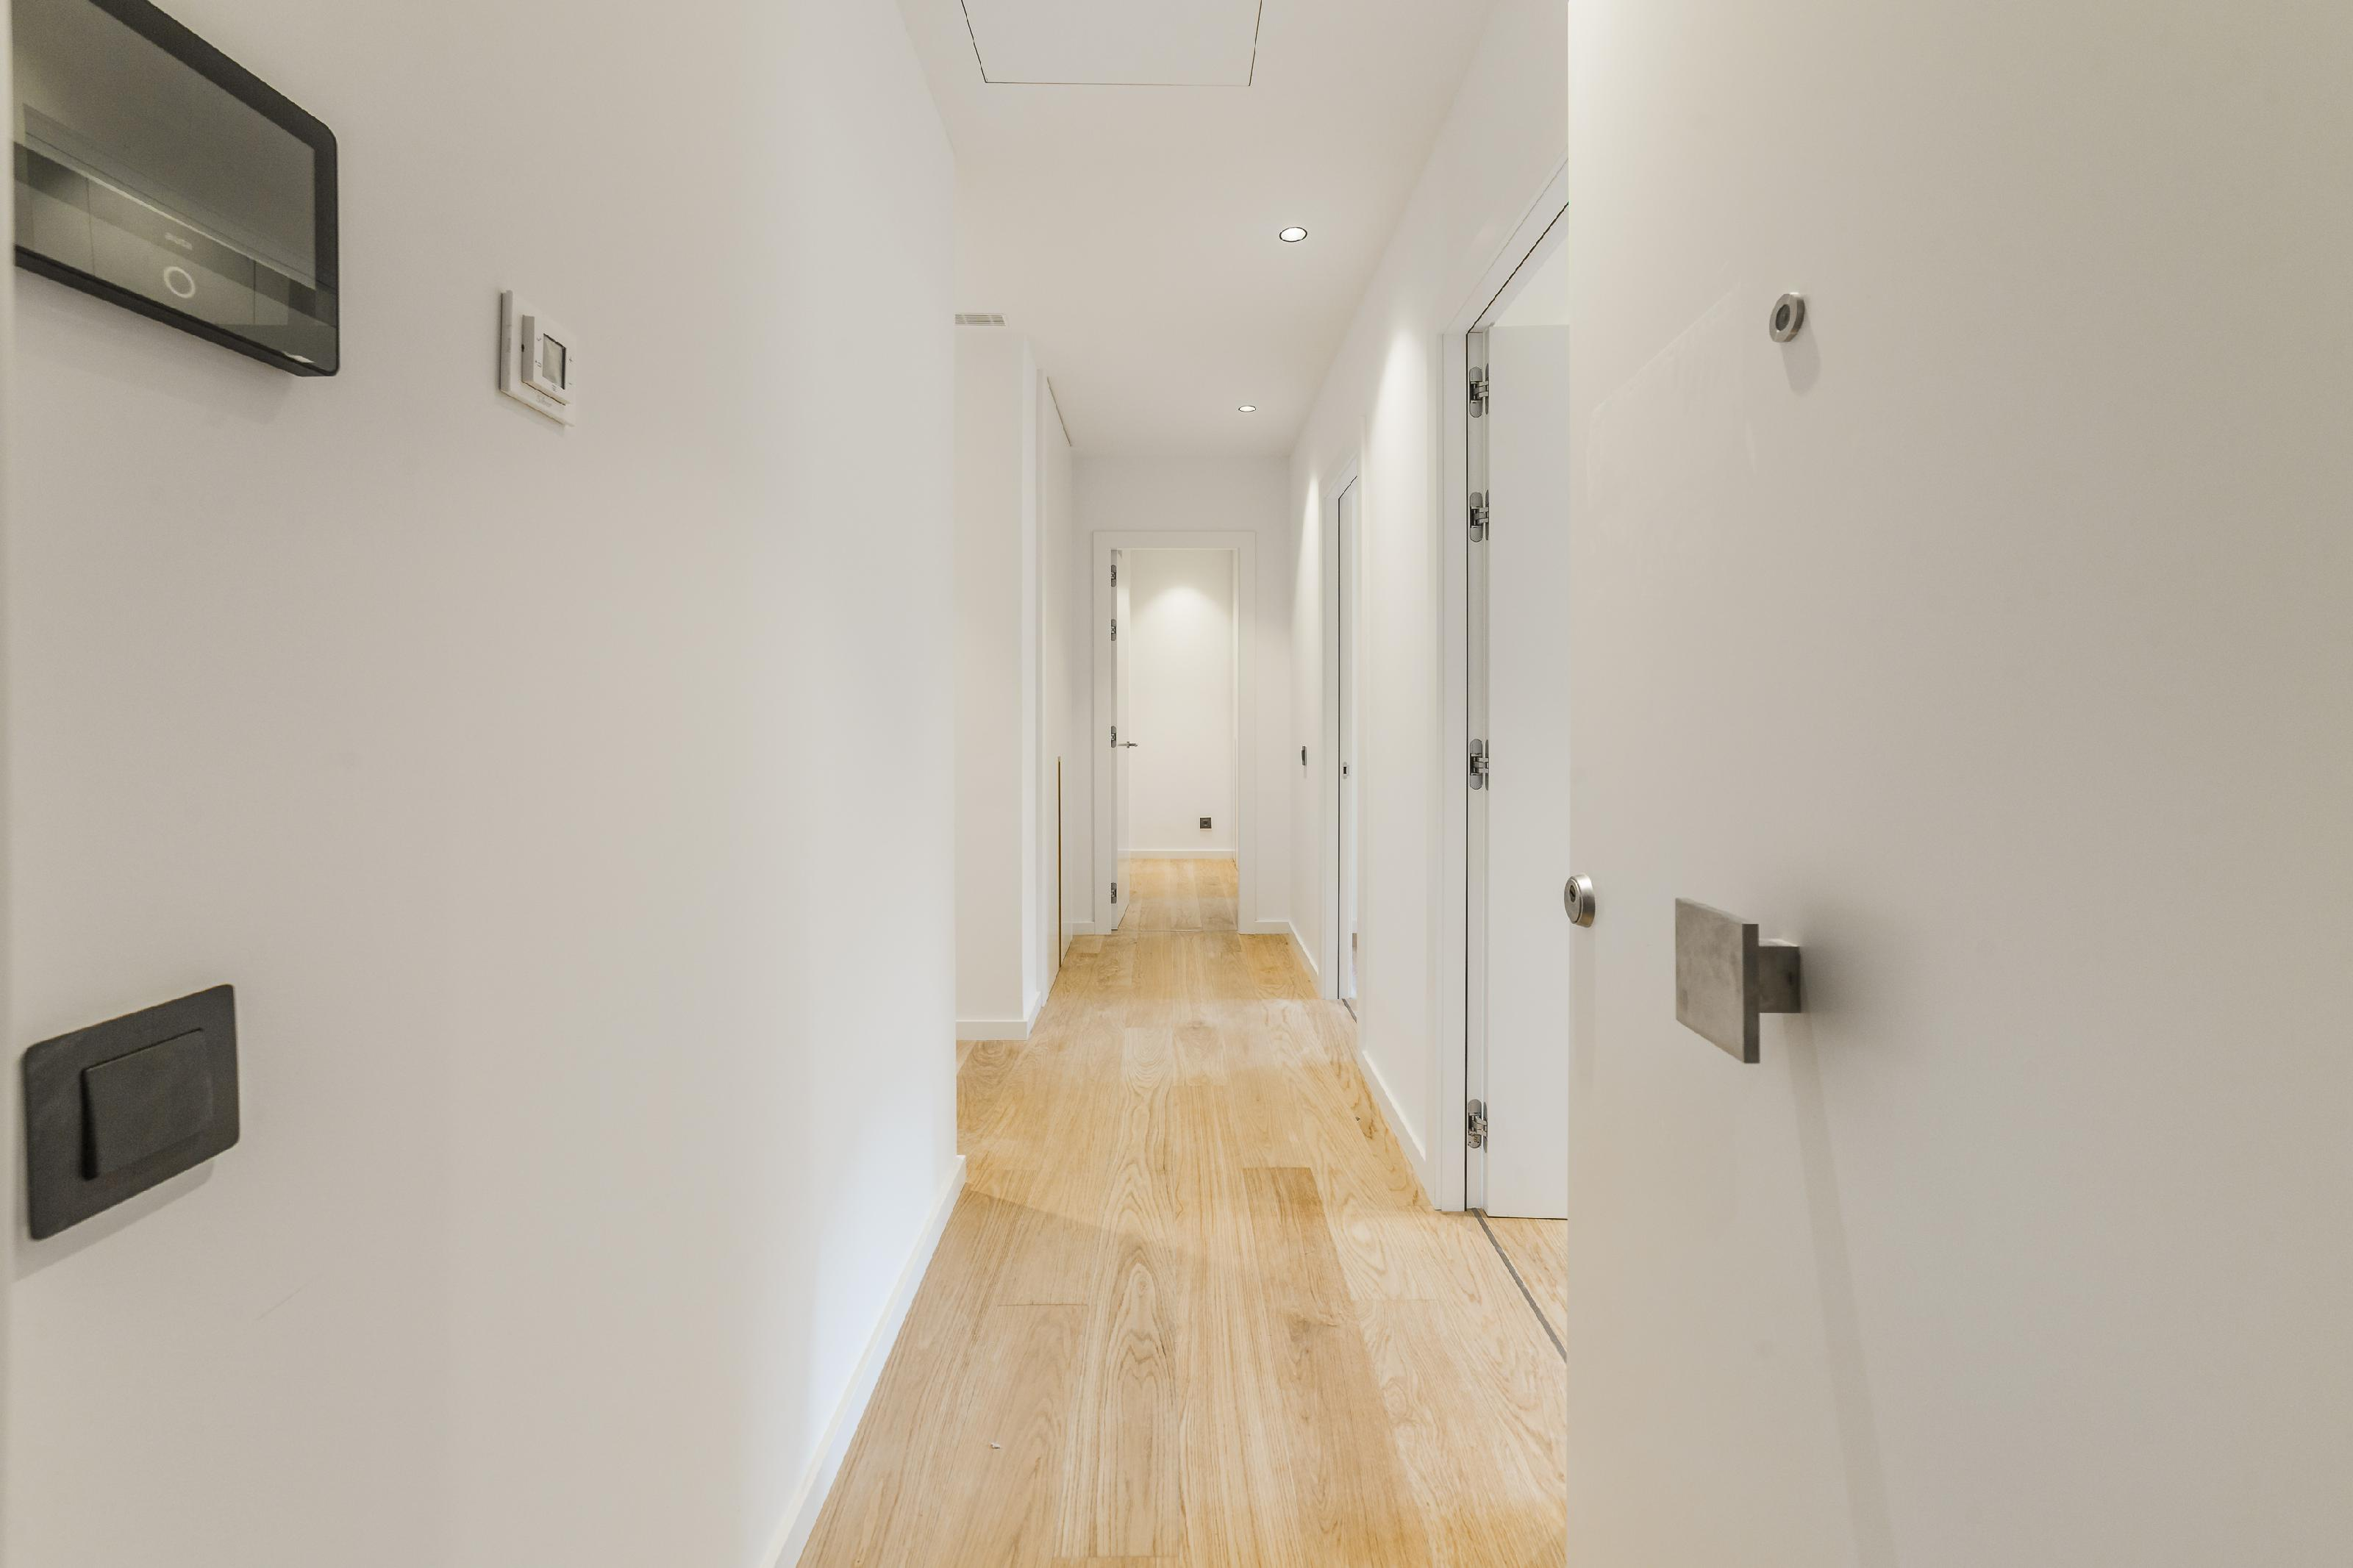 182176 Apartment for sale in Eixample, Old Left Eixample 6